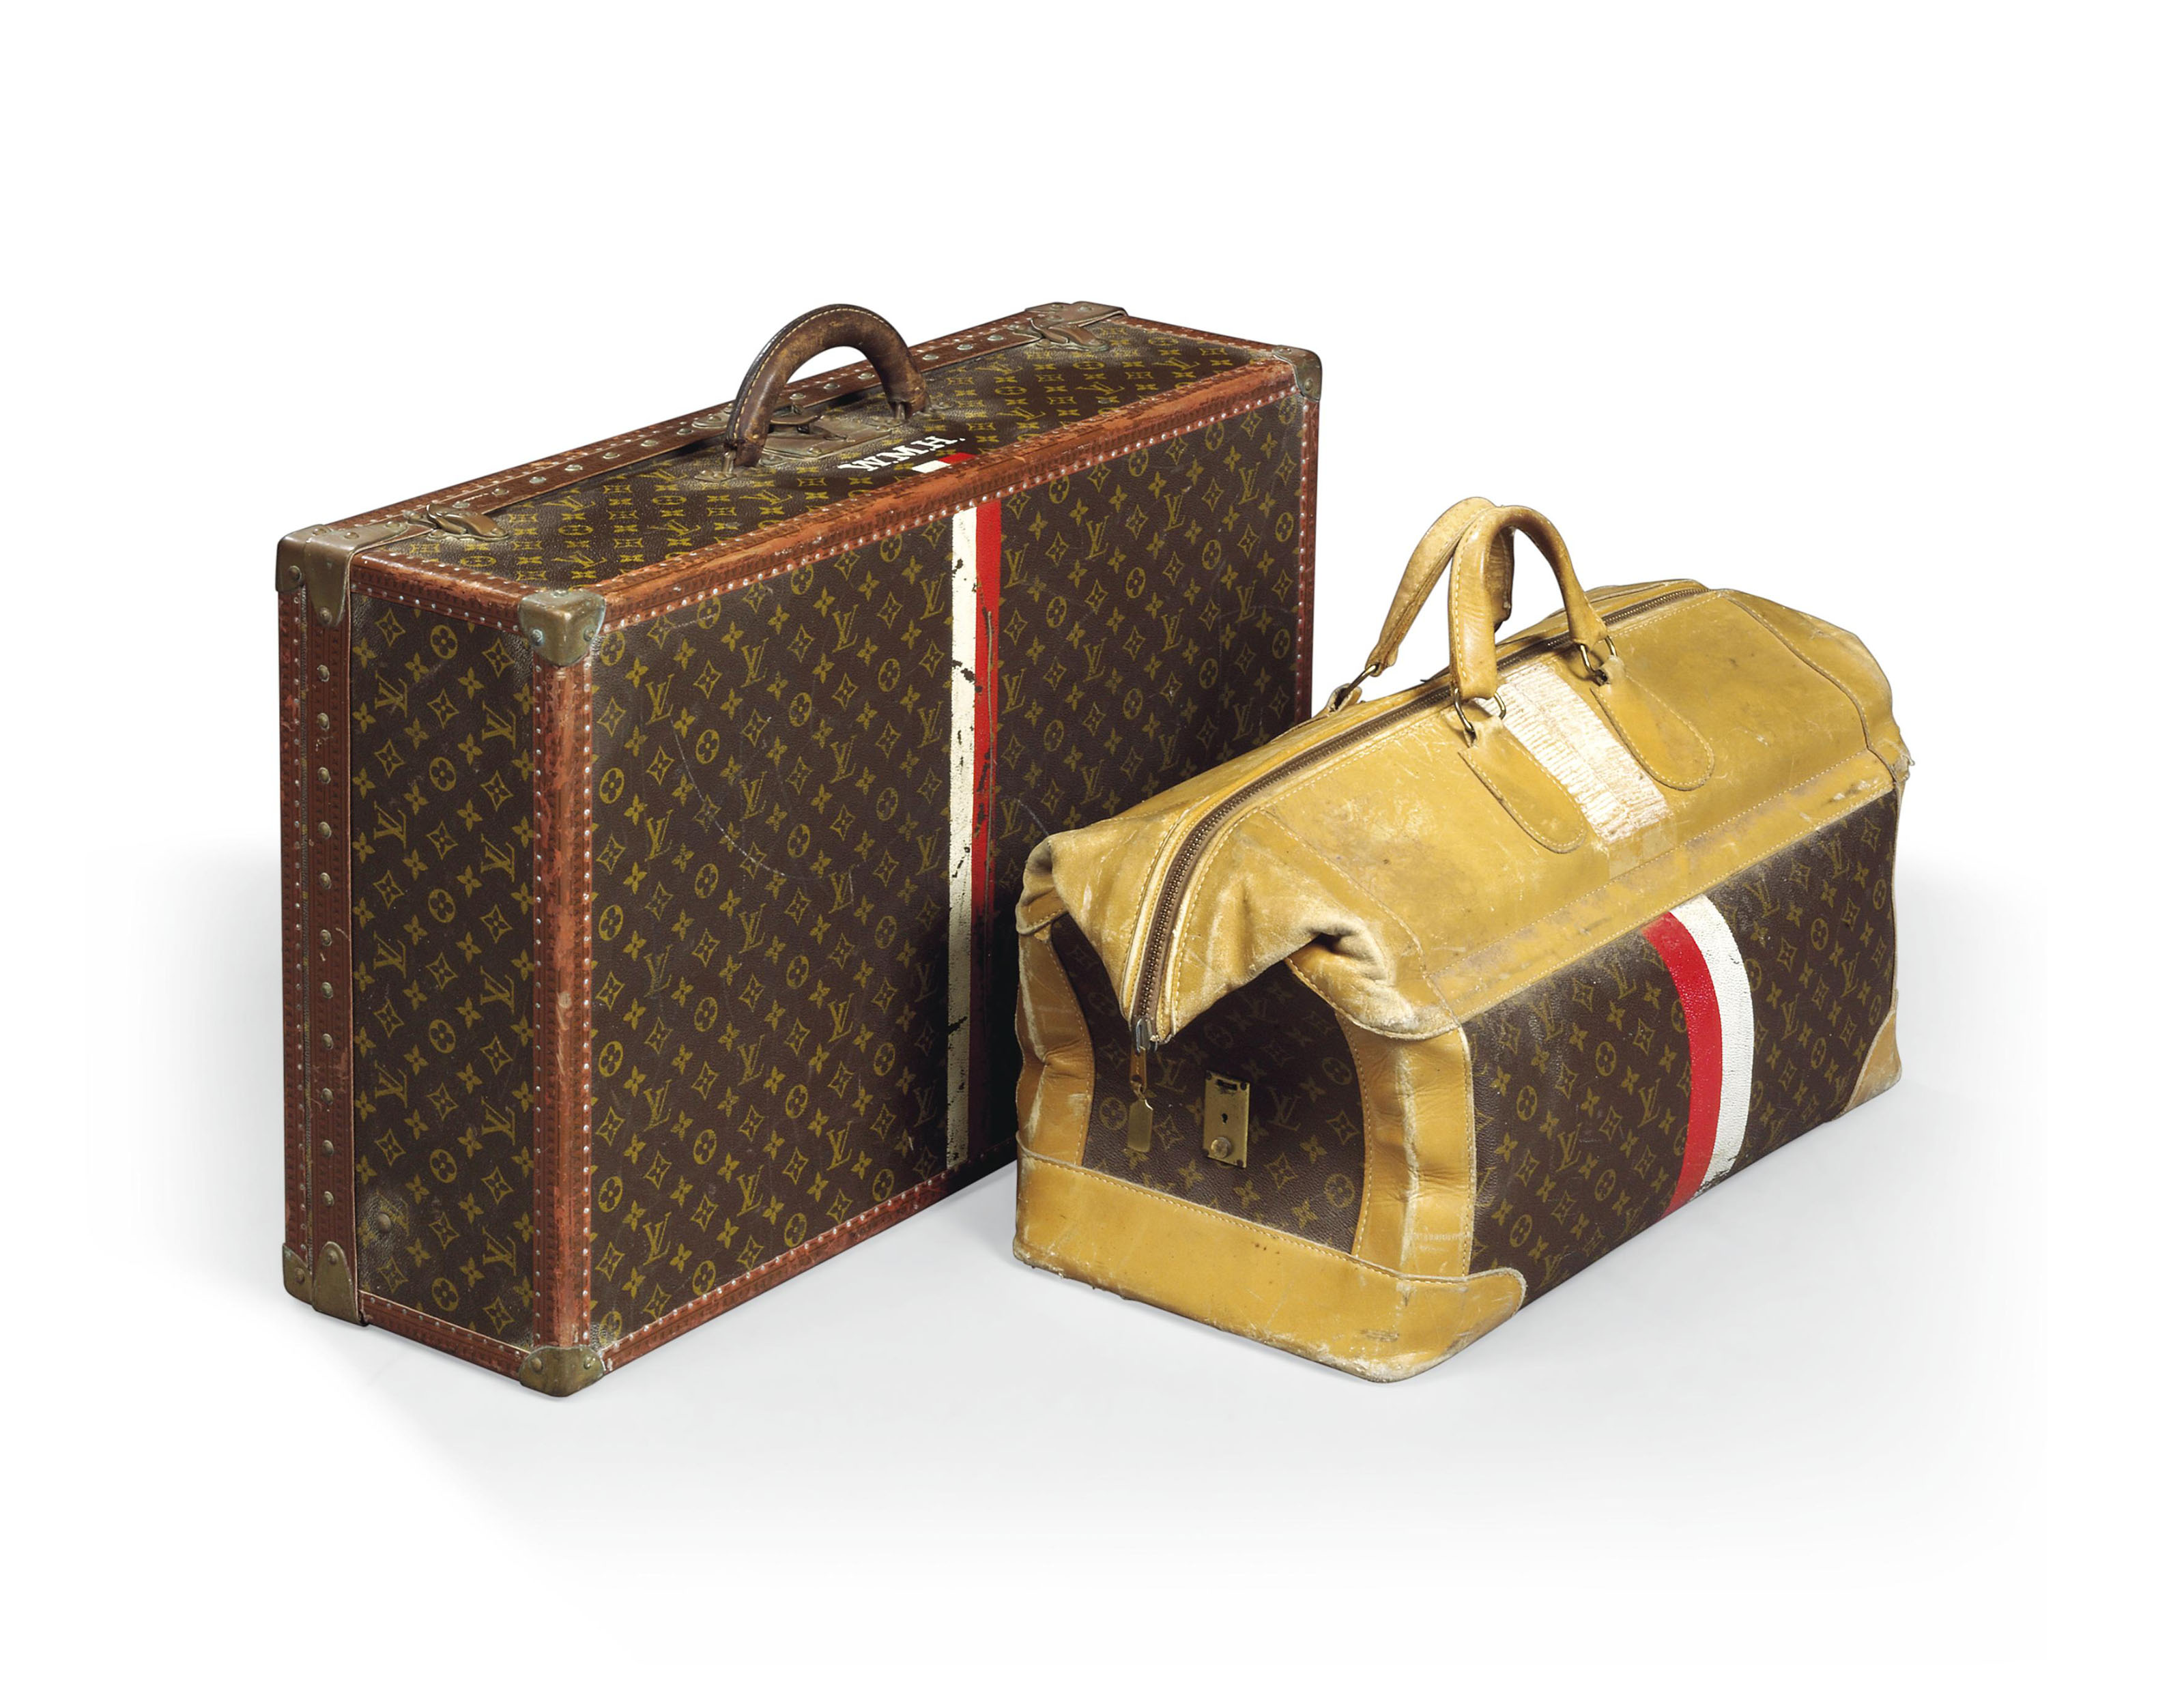 A HARD-SIDED SUITCASE IN MONOGRAM CANVAS AND A SOFT TRAVEL BAG IN MONOGRAM  CANVAS ccafc4148901e